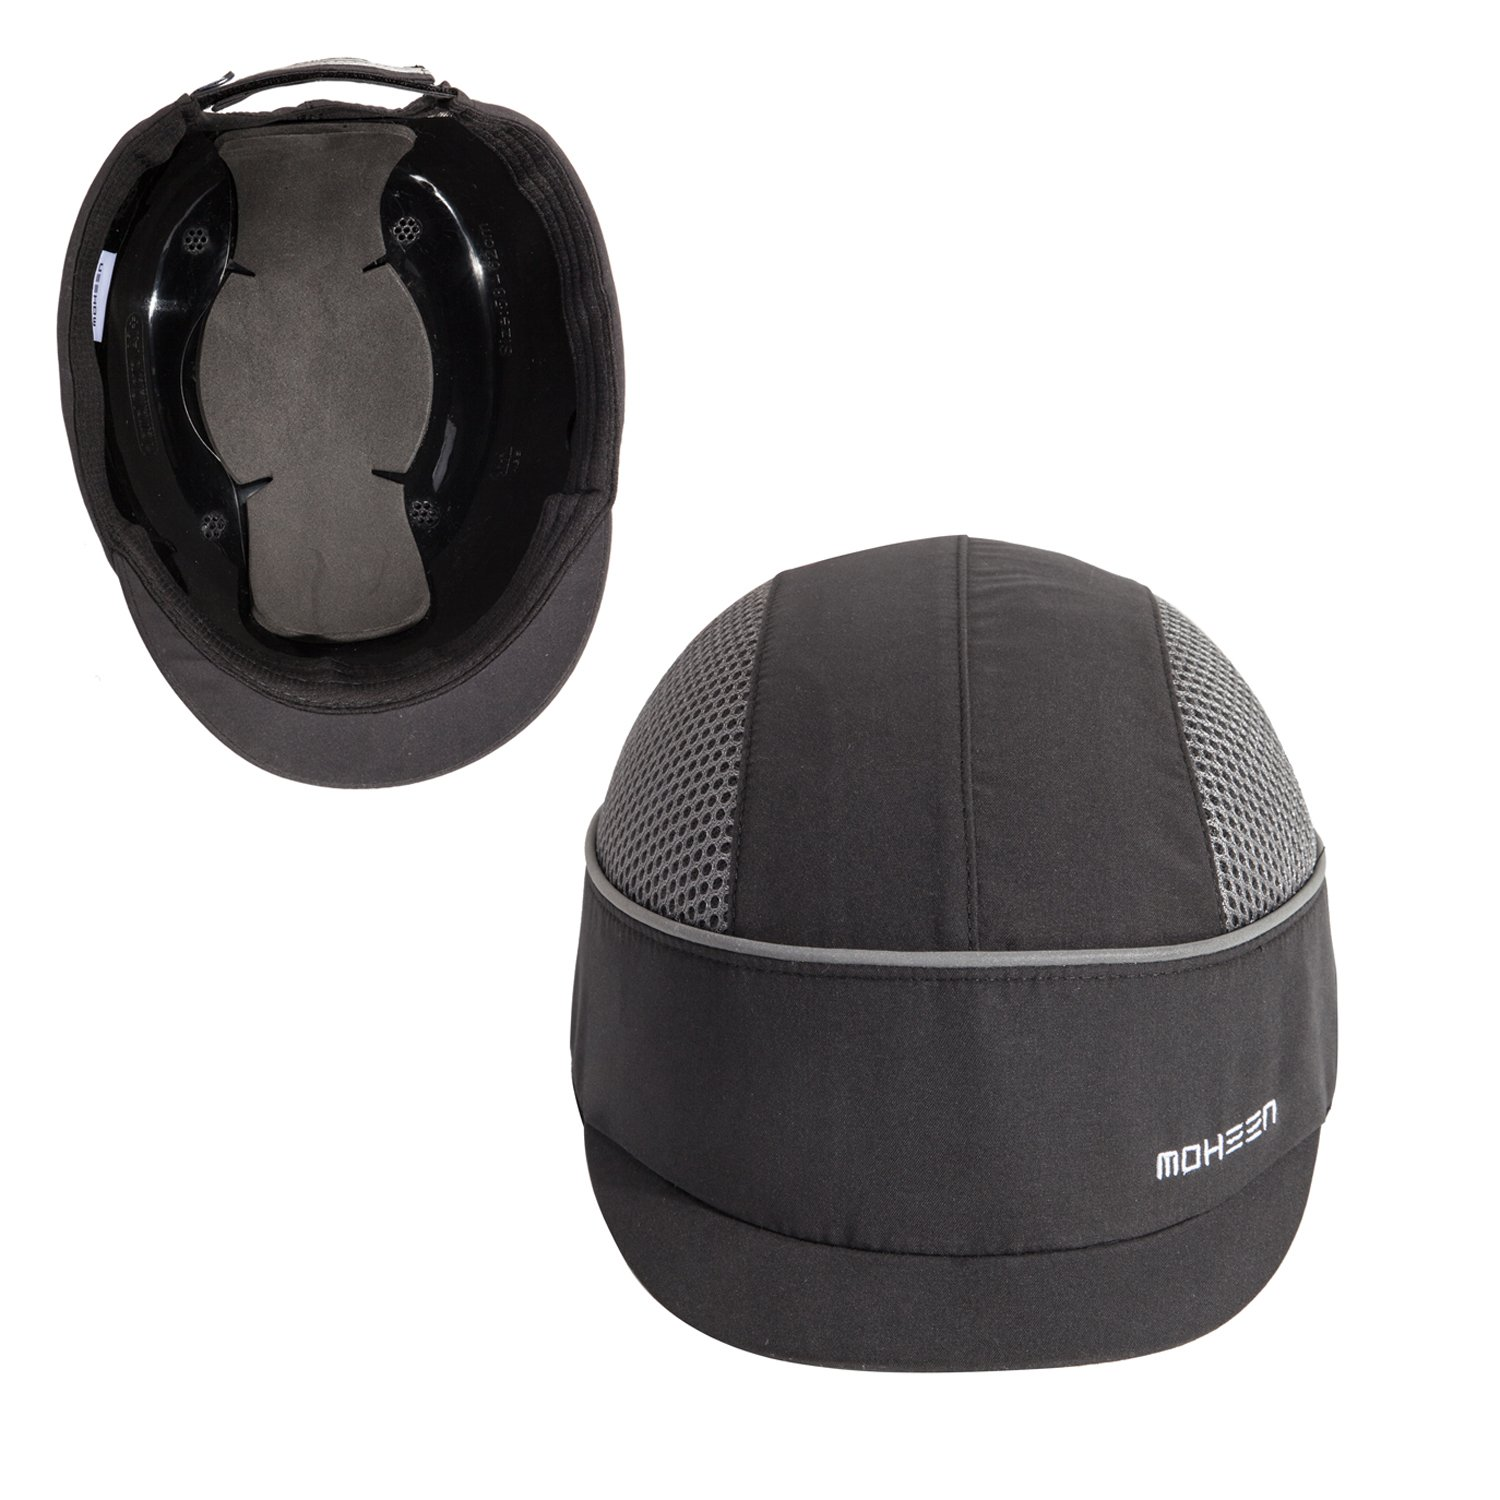 Safety Bump Cap with With Reflective Stripes, Lightweight and Breathable Hard Hat Head Protection Cap